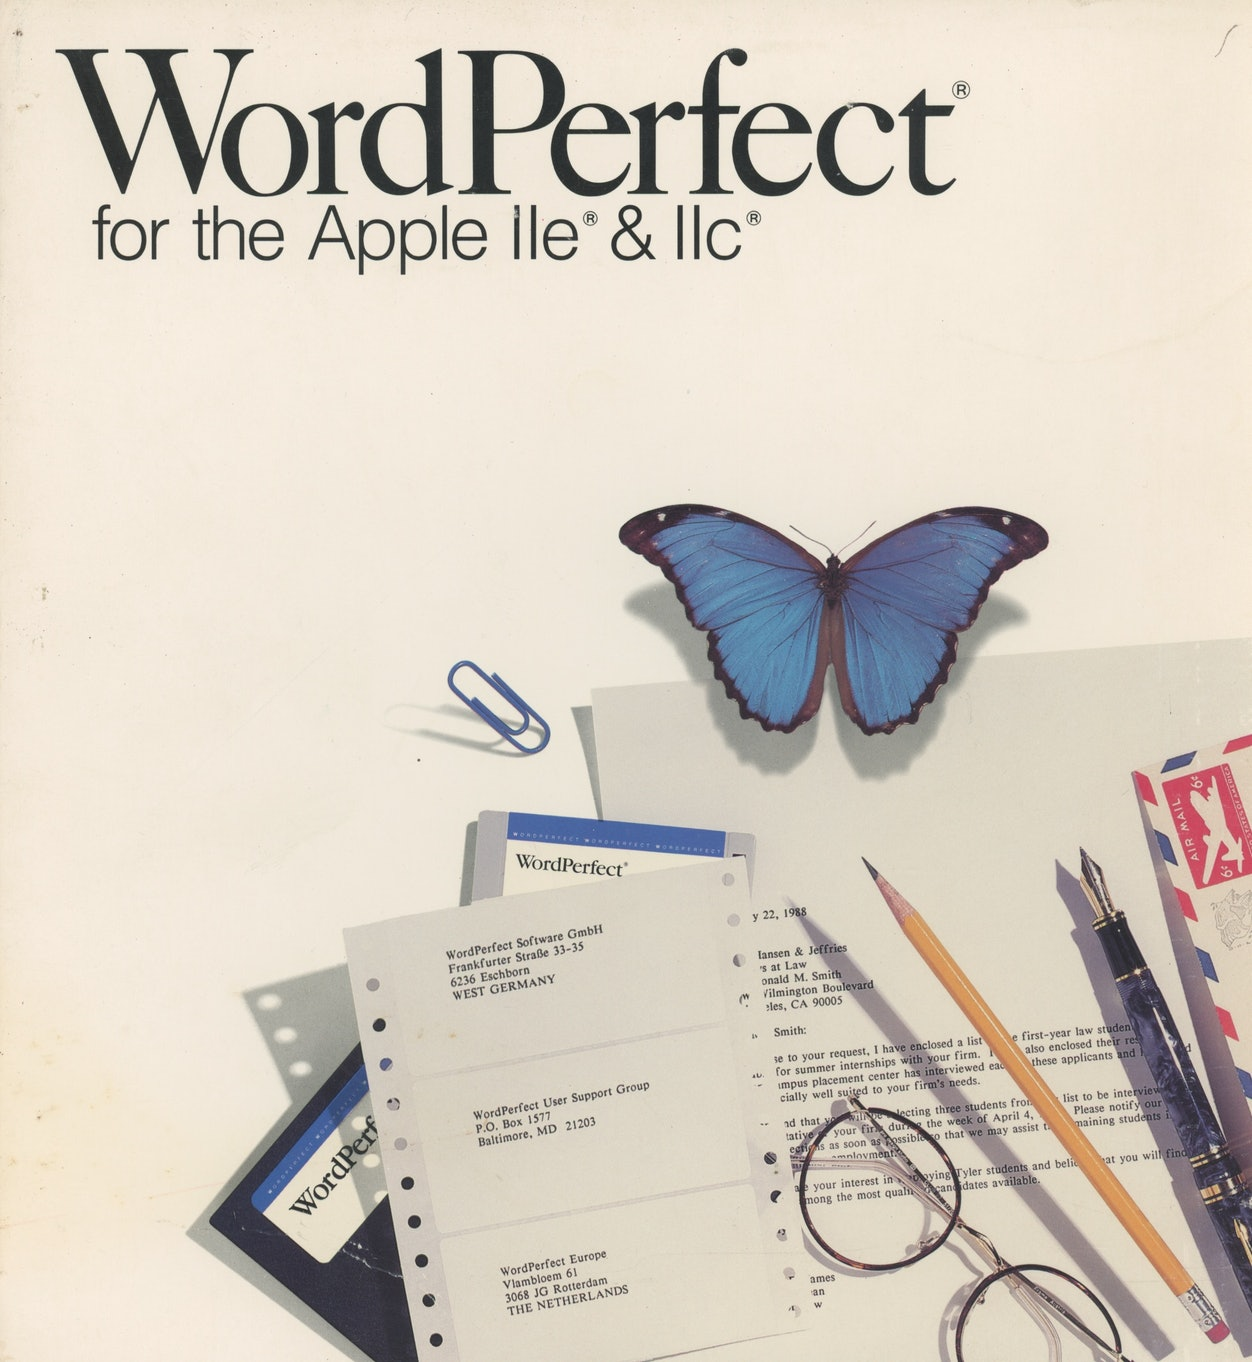 WordPerfect for the Apple IIe and IIc